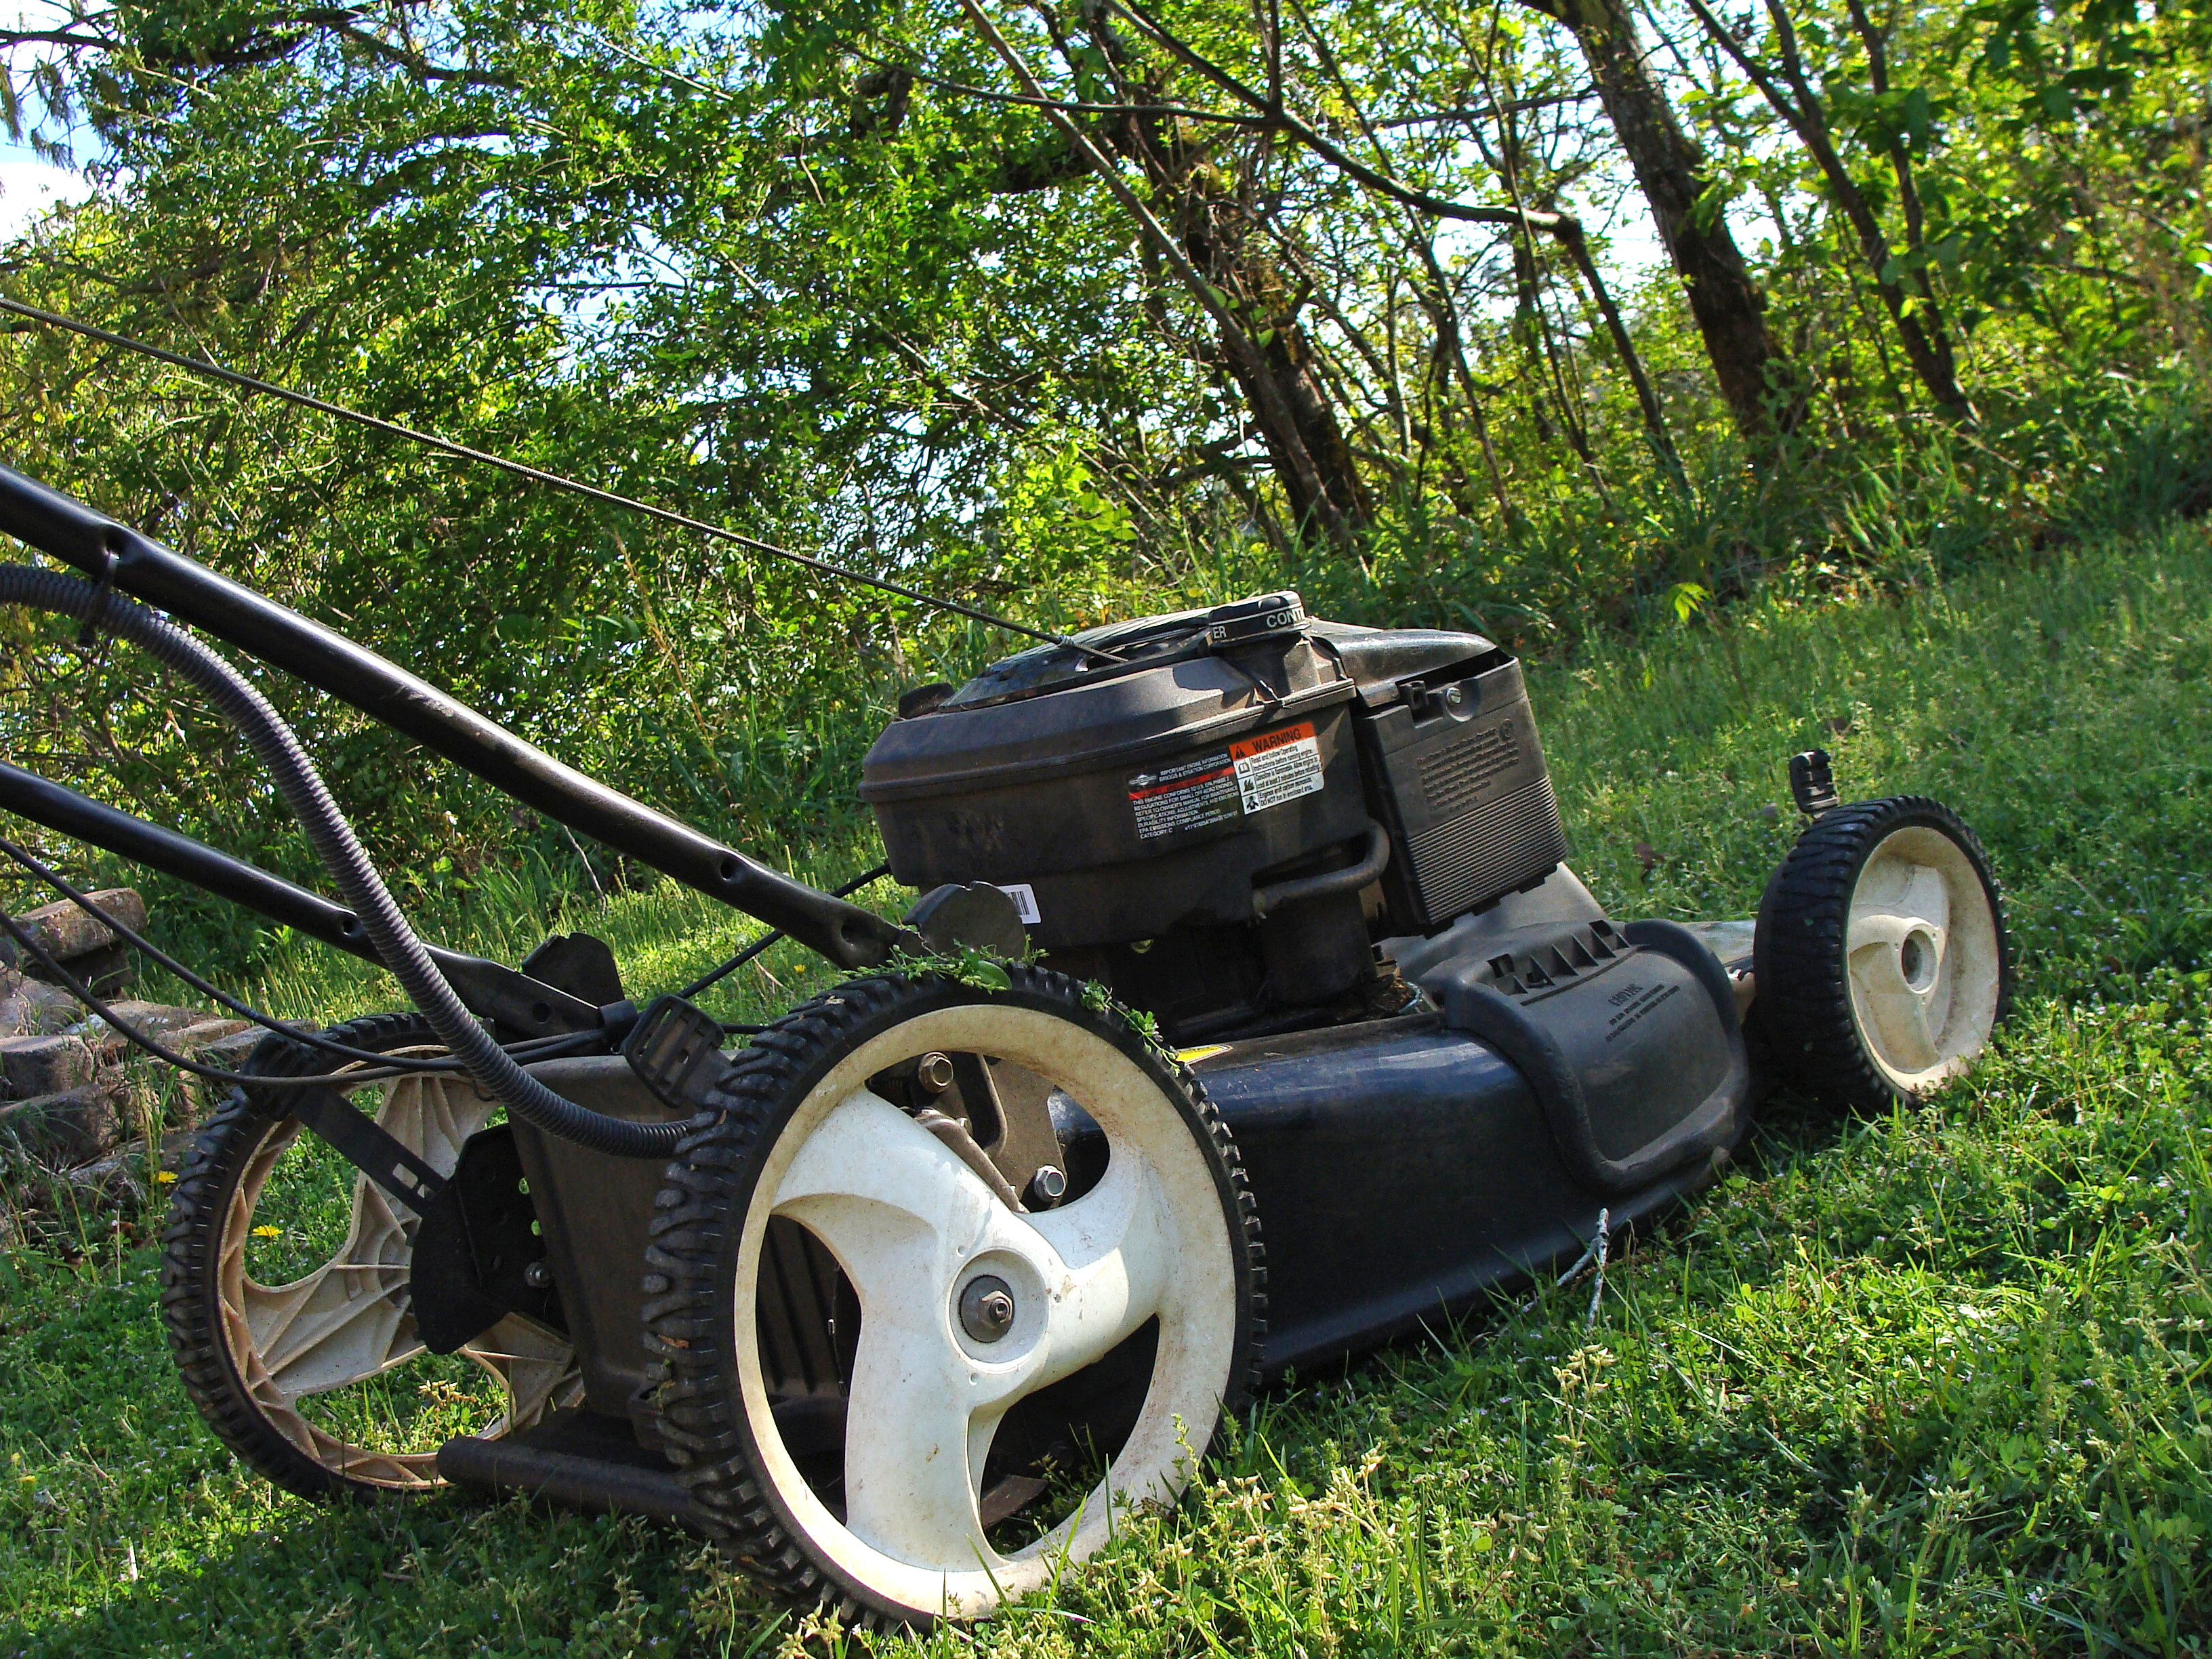 Mowing 101 how to have your best lawn yet for How often should you mow your lawn